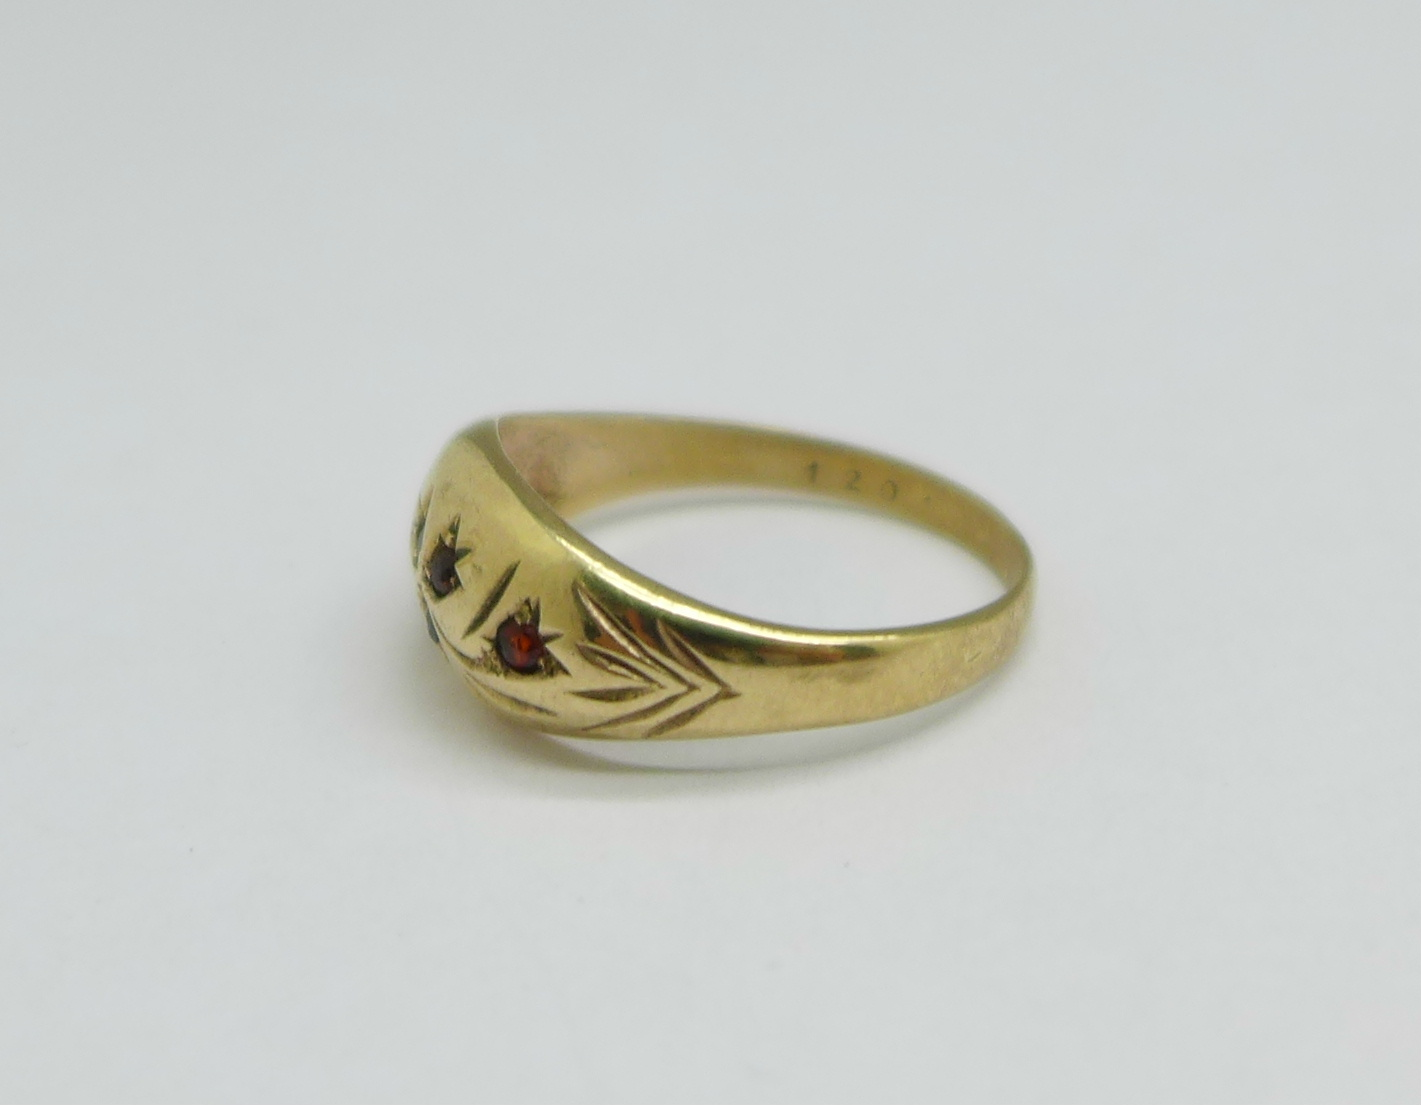 A 9ct gold and garnet ring, one stone missing, 2.8g, P - Image 2 of 3